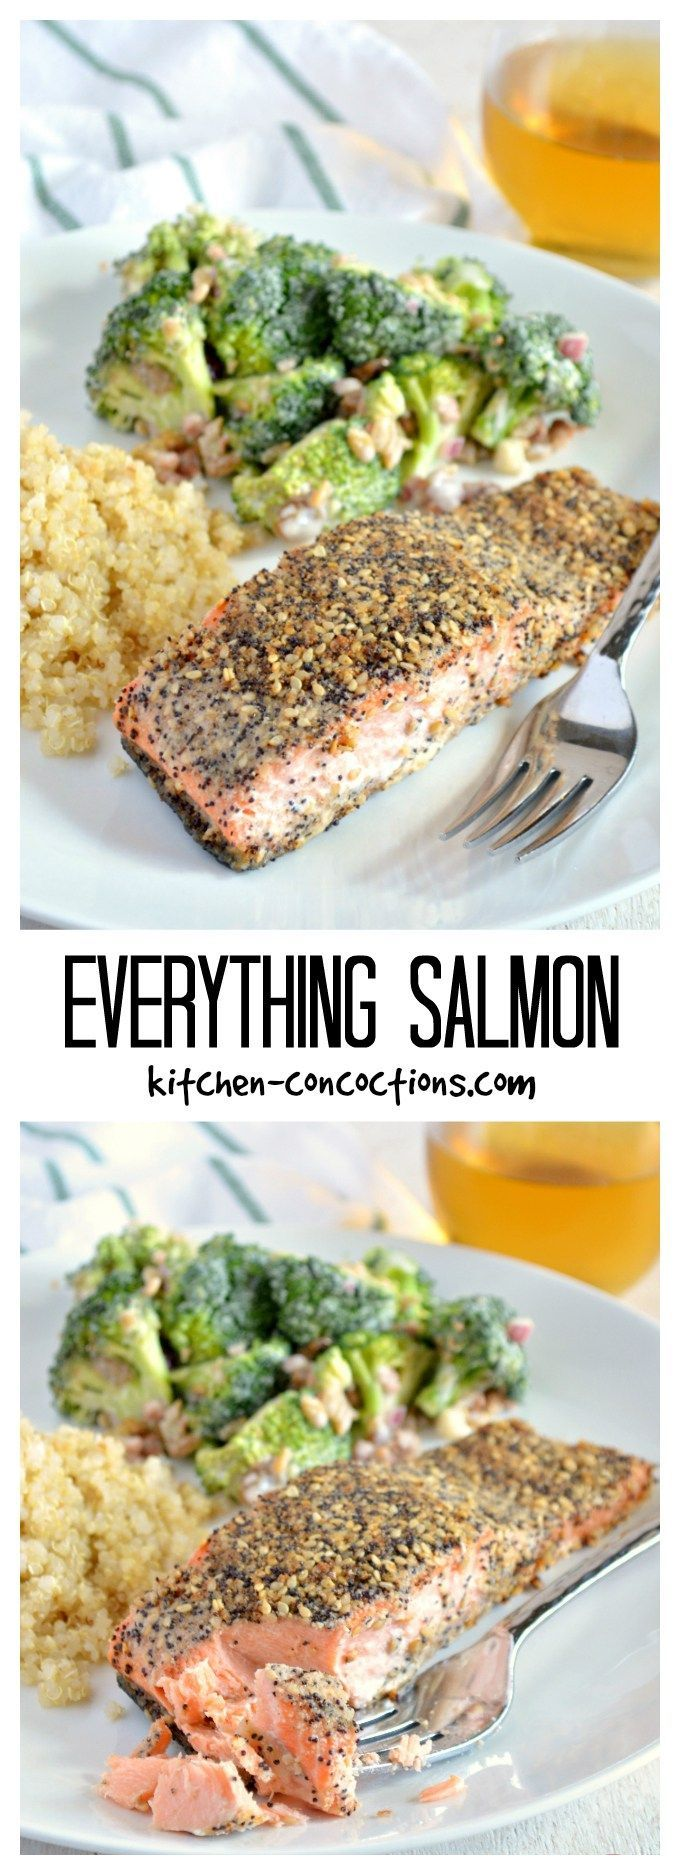 "Everything Seasoned Salmon - This easy Everything Salmon recipe, pan seared salmon topped with homemade ""everything bagel"" seasoning, is our go to recipe for salmon! It is a healthy and quick 30 minute meal perfect for weeknight dinners!"